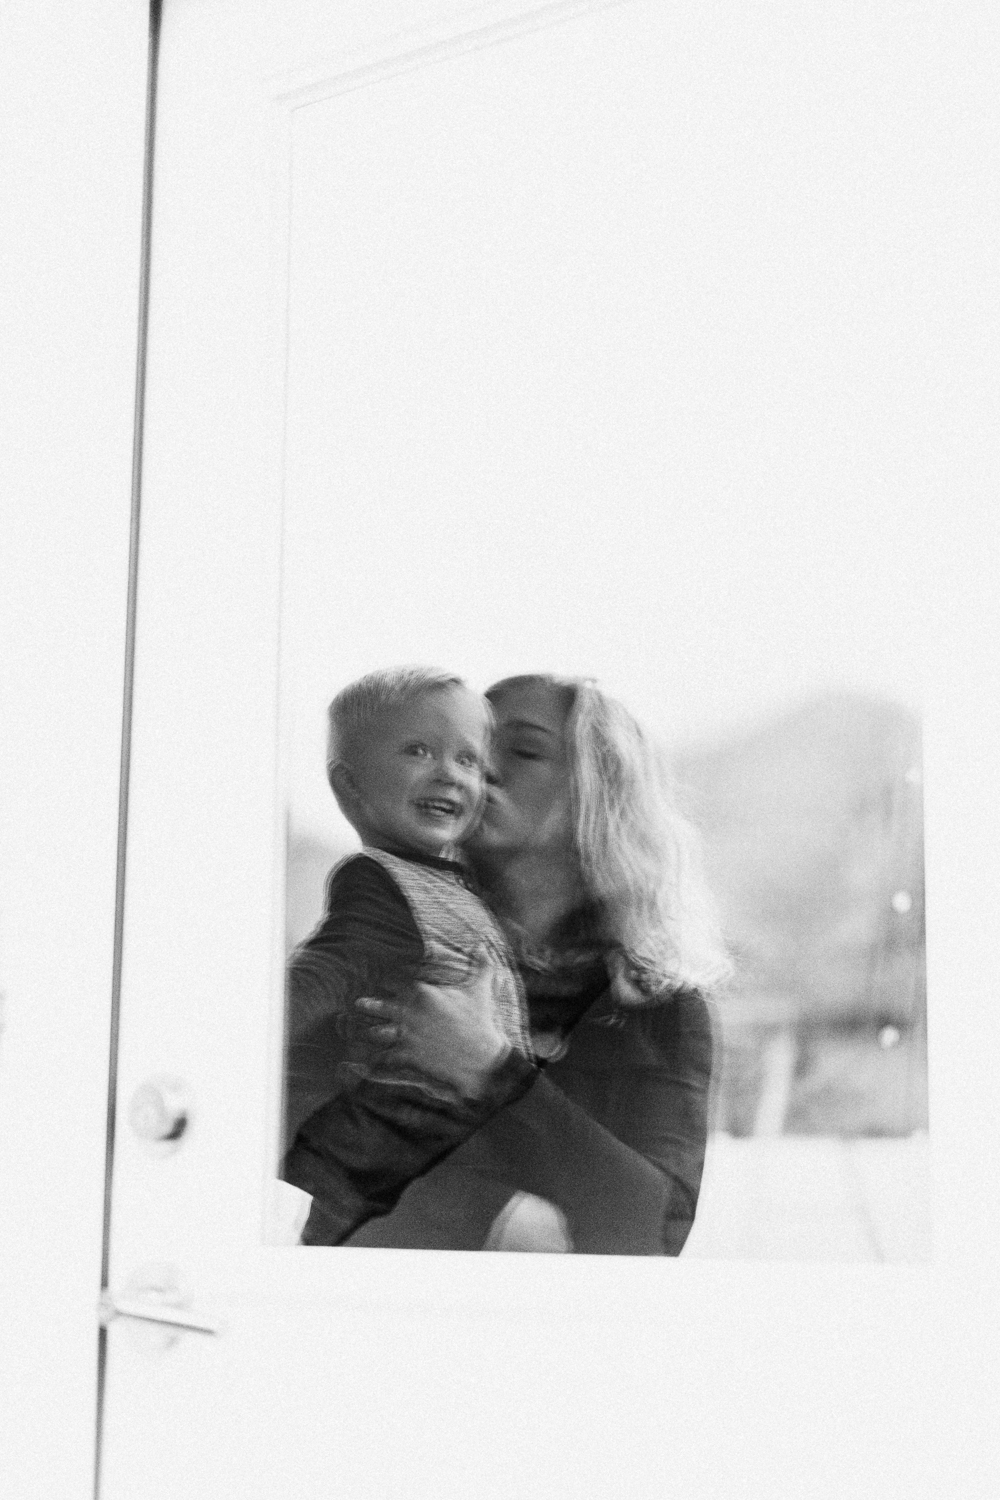 mother and son candid portrait slc utah